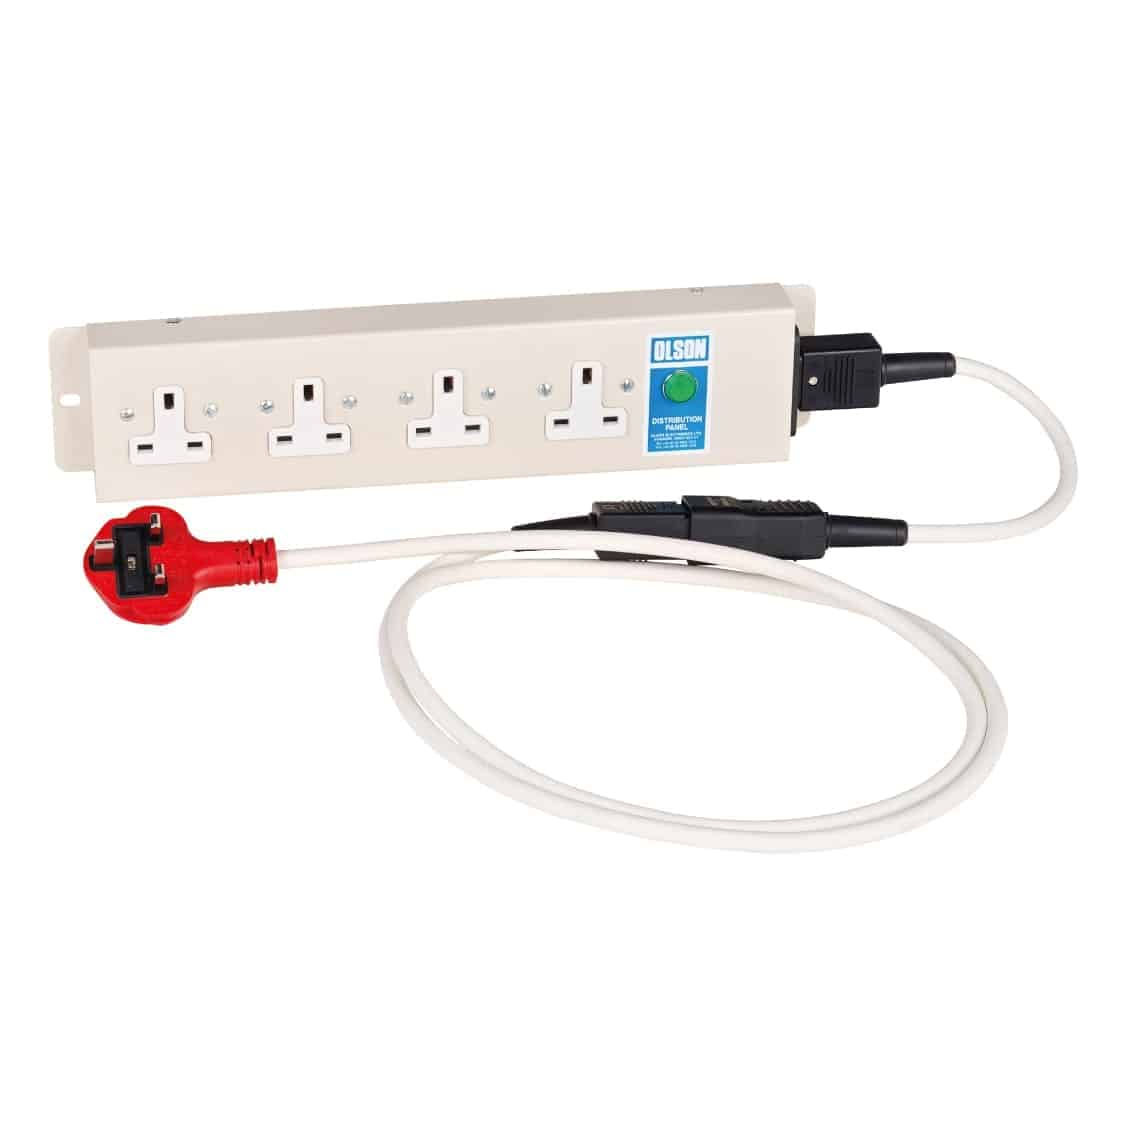 4 socket electrical board with removable lead